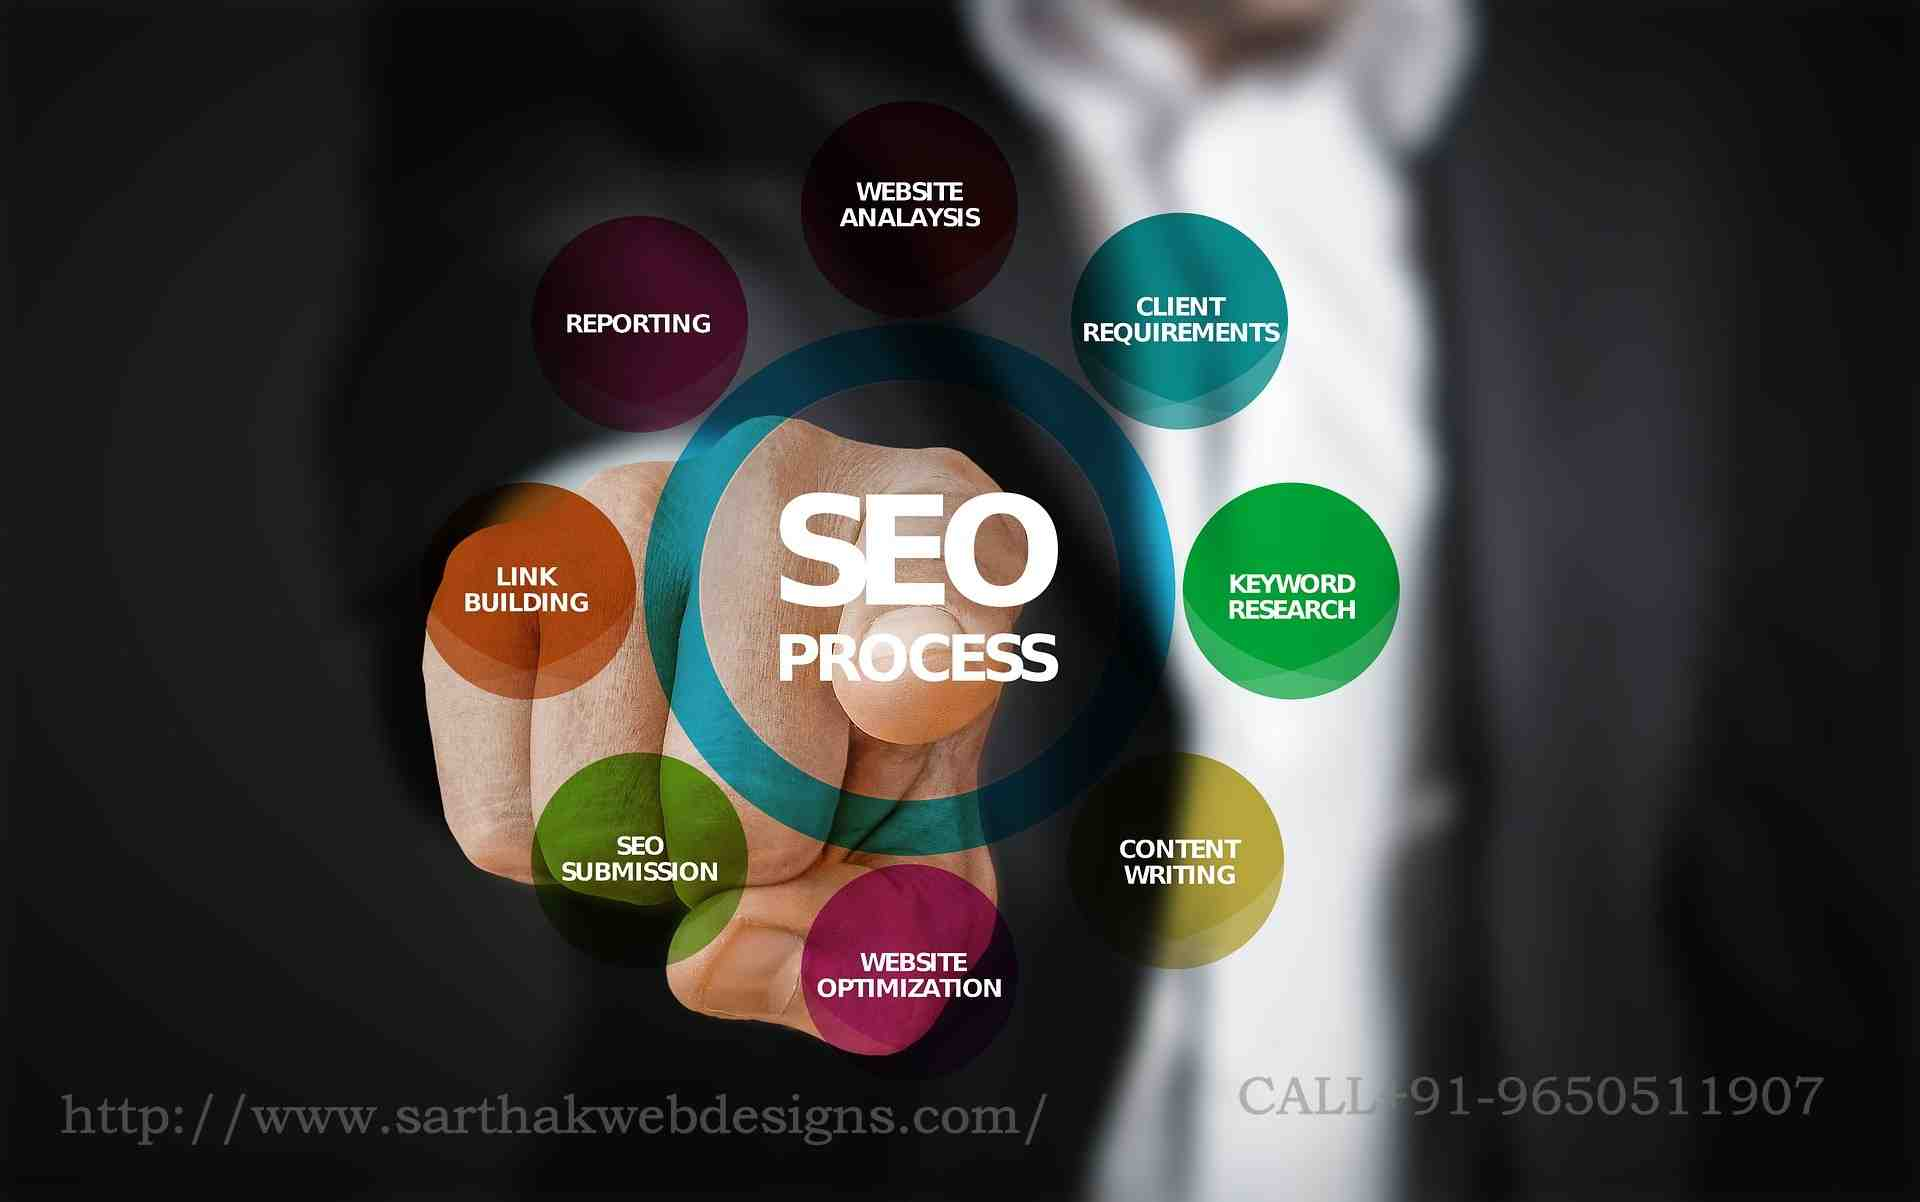 ,Search Engine Optimization (SEO),SMO,,Pay Per Click (PPC Advertising),Online Reputation Management (ORM) ,Online Marketing,App Store Optimization (ASO),SEM,Content Marketing,Email Marketing,Video Marketing